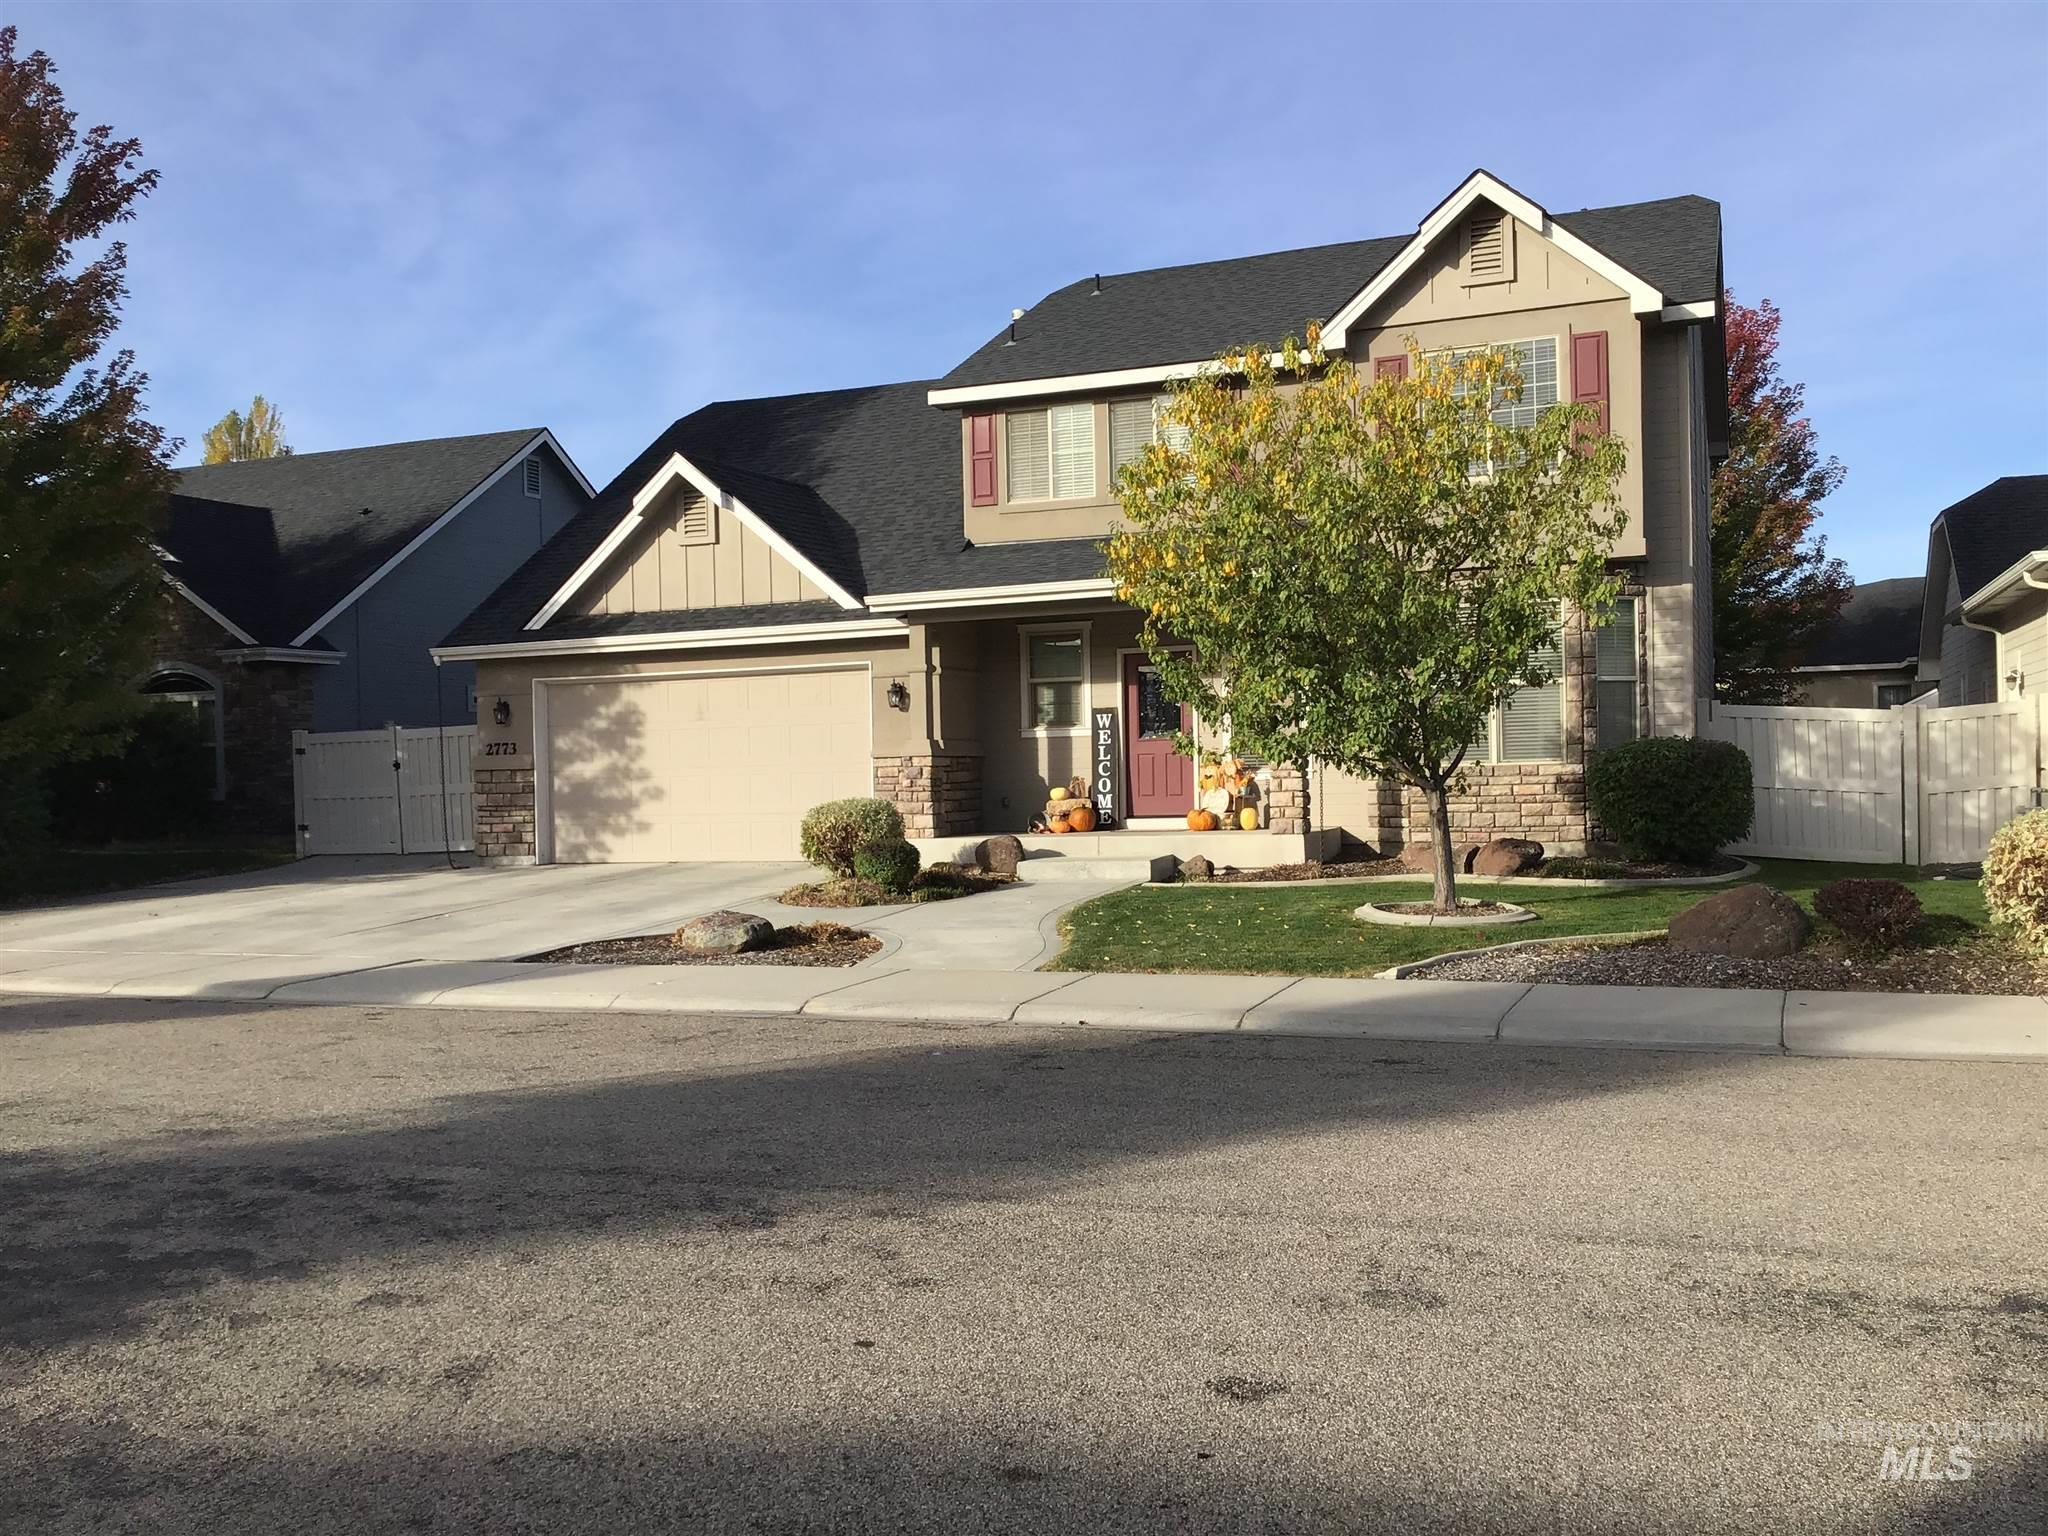 2773 S Knapp, Meridian, Idaho 83642, 4 Bedrooms, 2.5 Bathrooms, Residential For Sale, Price $489,900, 98784769